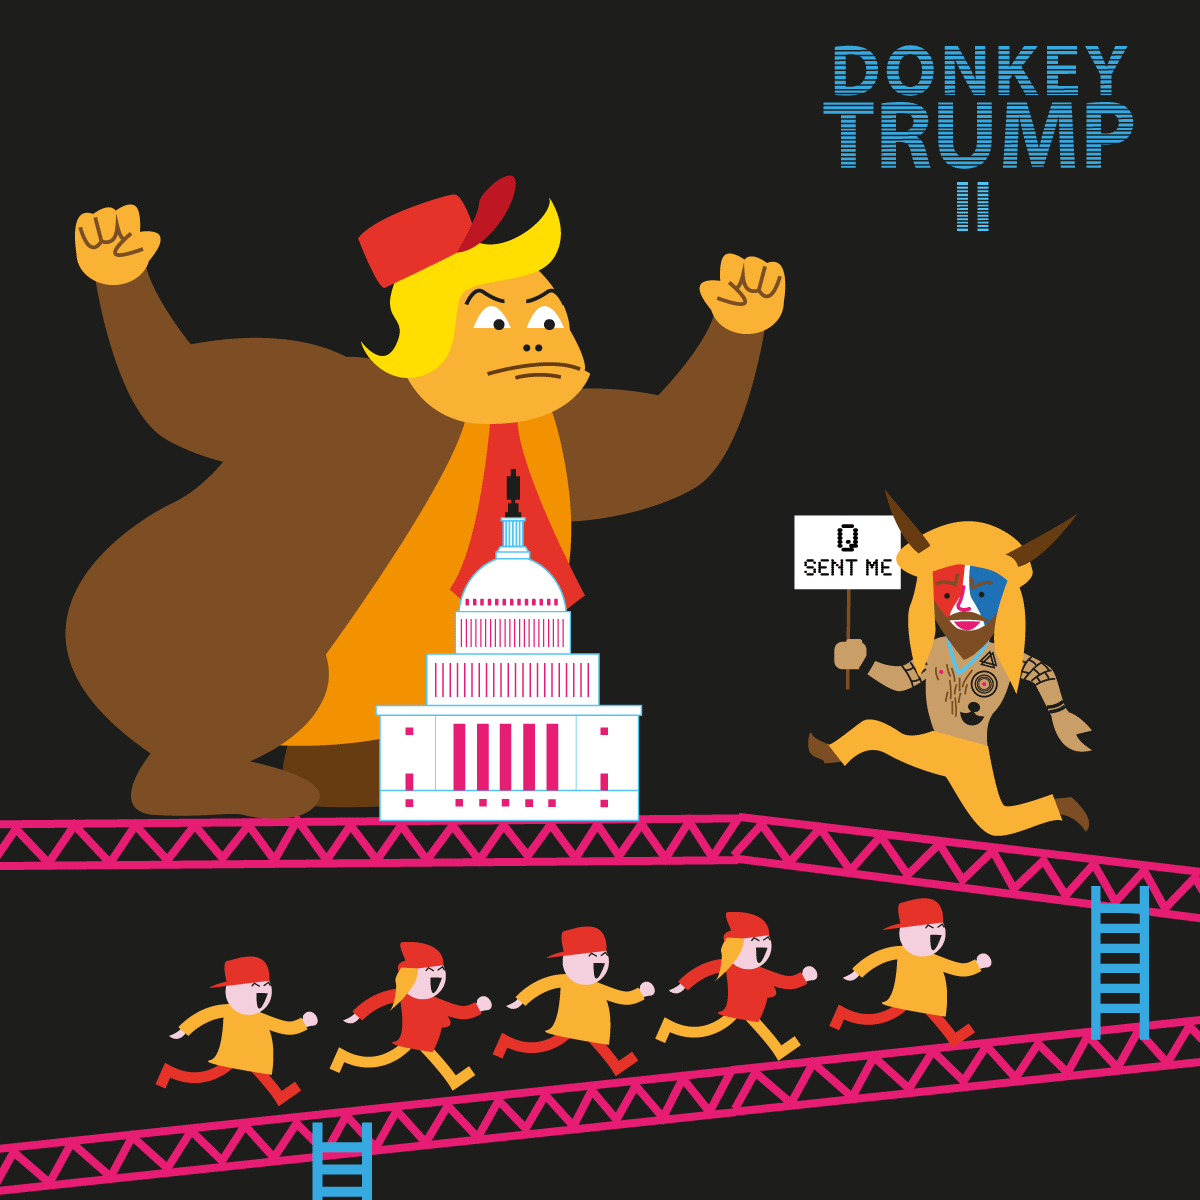 Donkey Trump et le Capitole (illustration vectorielle en flat design)